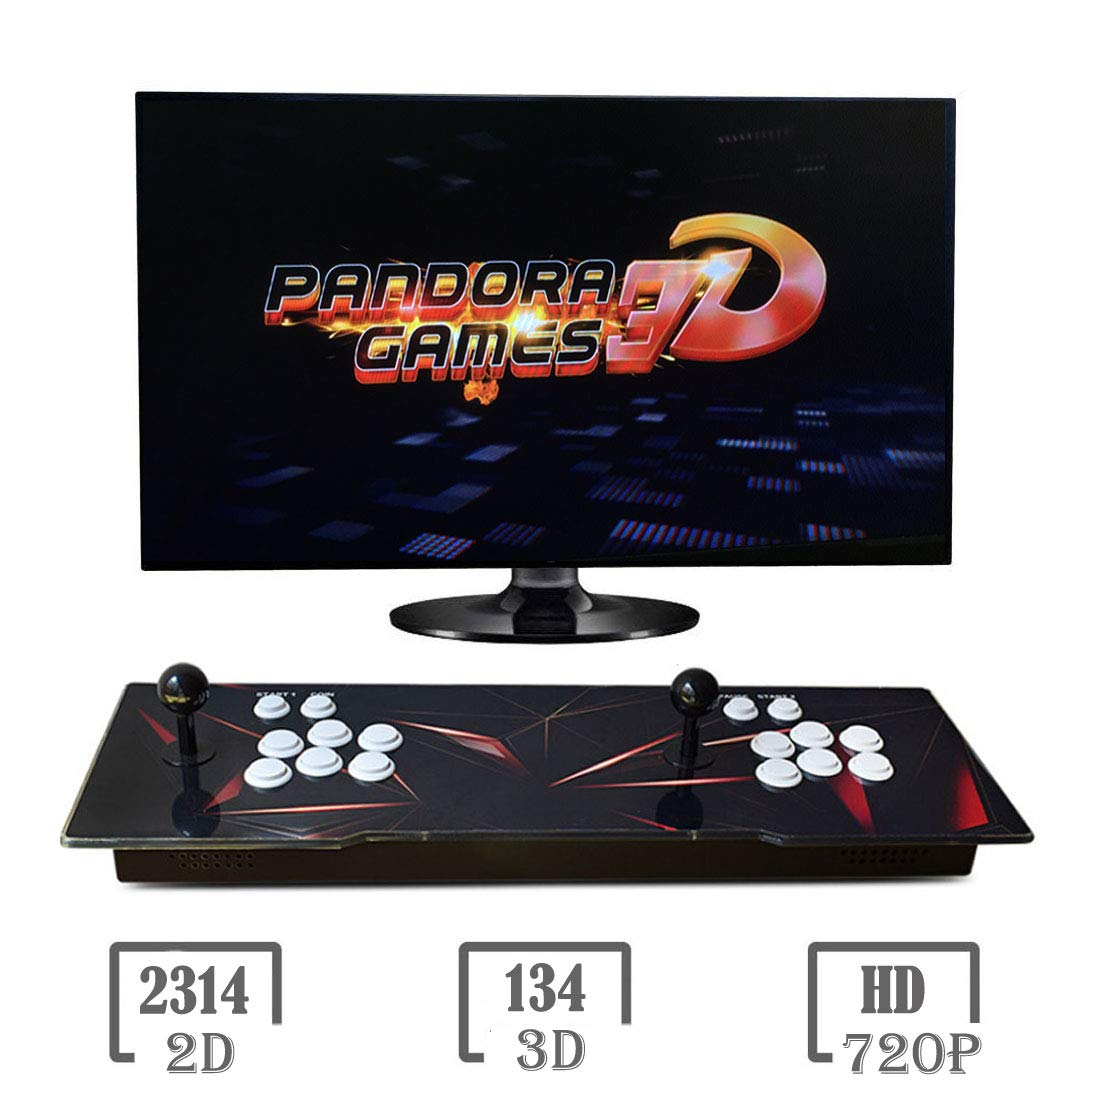 3D Pandora Key 7 Games Arcade Console | 2448 Games Installed | Support 3D Games | Add More Games | Search & Save Games Function | 1280x720P | Support 4 Players Online | HDMI/VGA/USB/AUX Audio Output by MYMIQEY (Image #1)